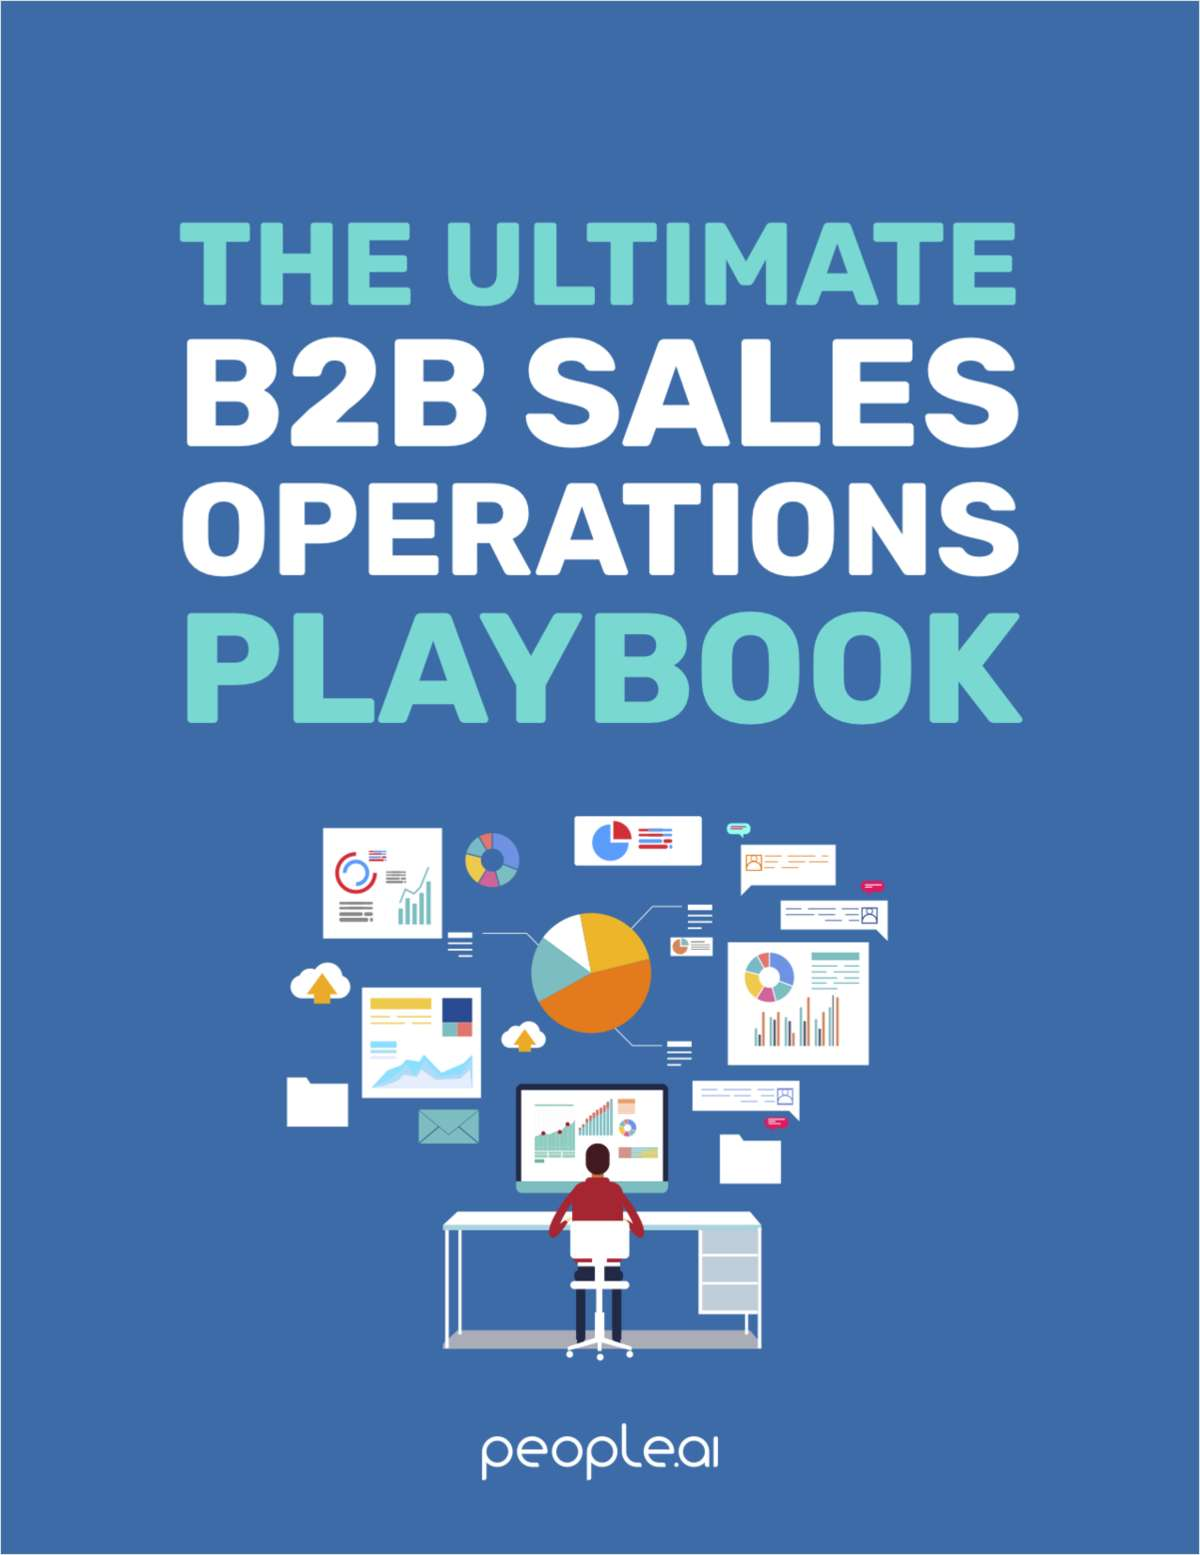 The Ultimate B2B Sales Operations Playbook